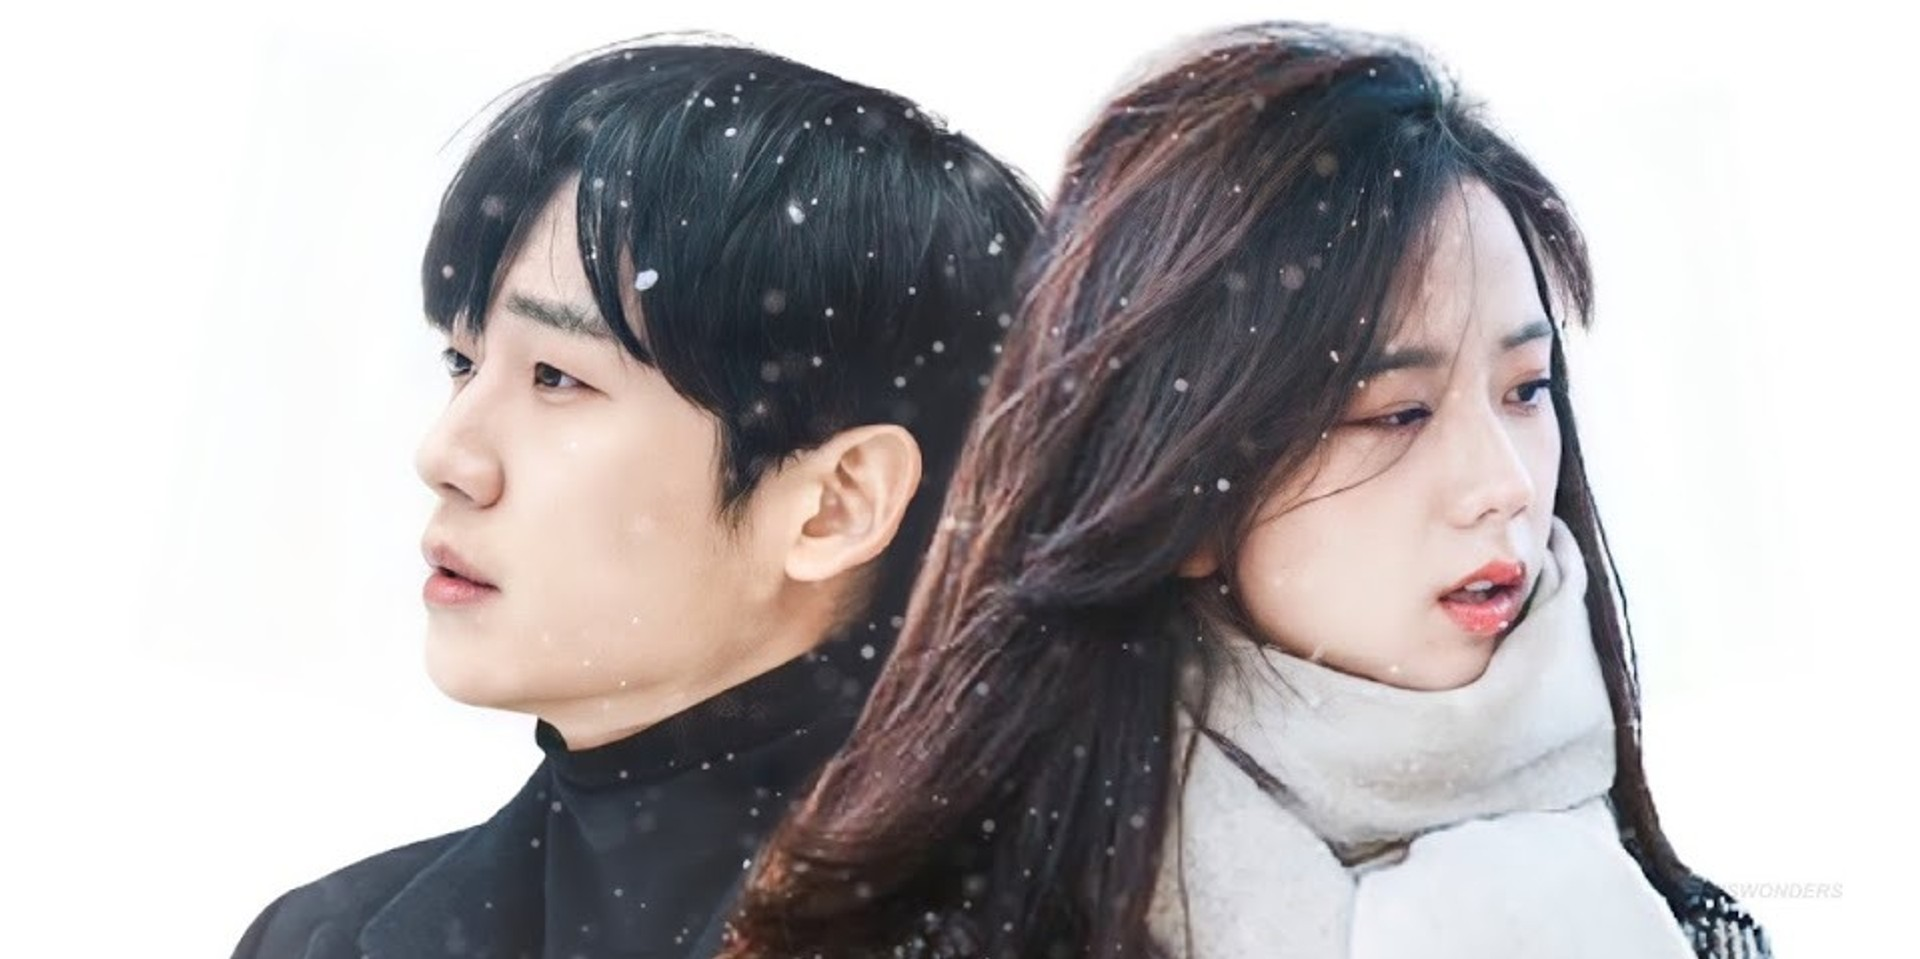 JTBC shares preview of 'Snowdrop' starring BLACKPINK's Jisoo and Jung Hae In - watch